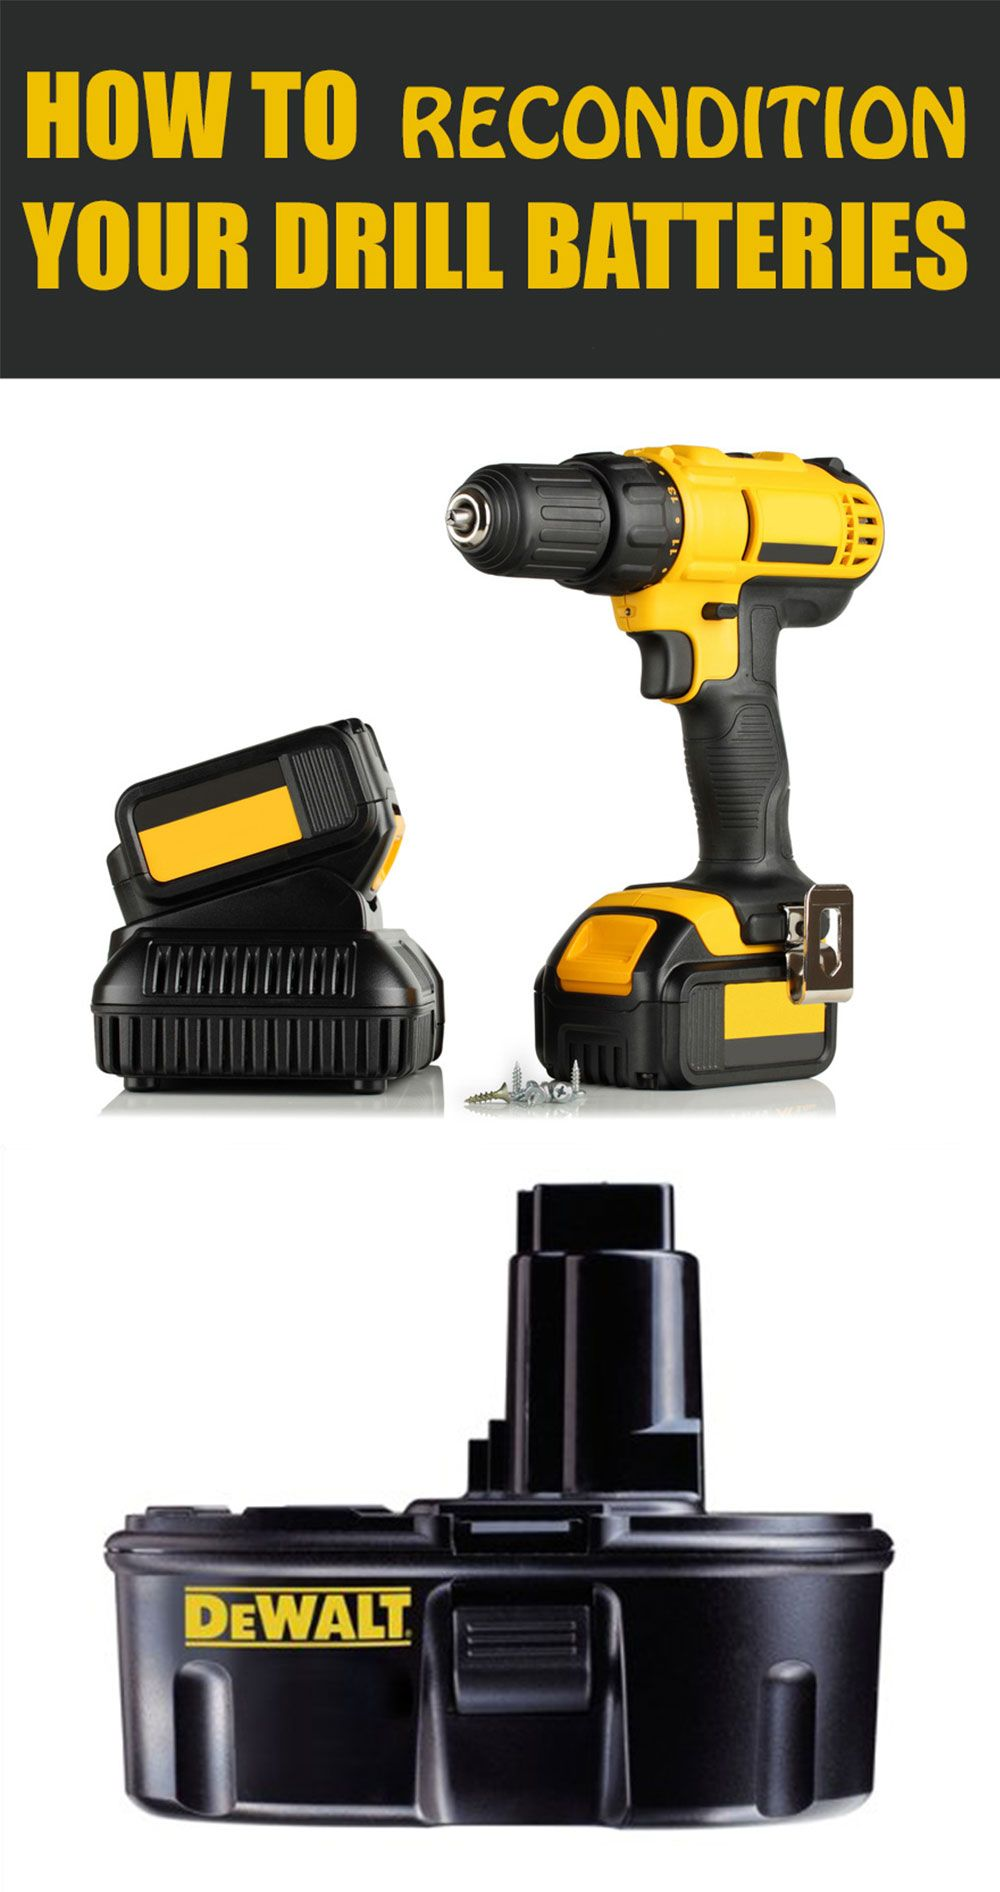 8 Simple Tips Tricks To Extend The Life Of Your Car Battery Tools And Stuff Battery Drill Cordless Drill Batteries Power Tool Batteries